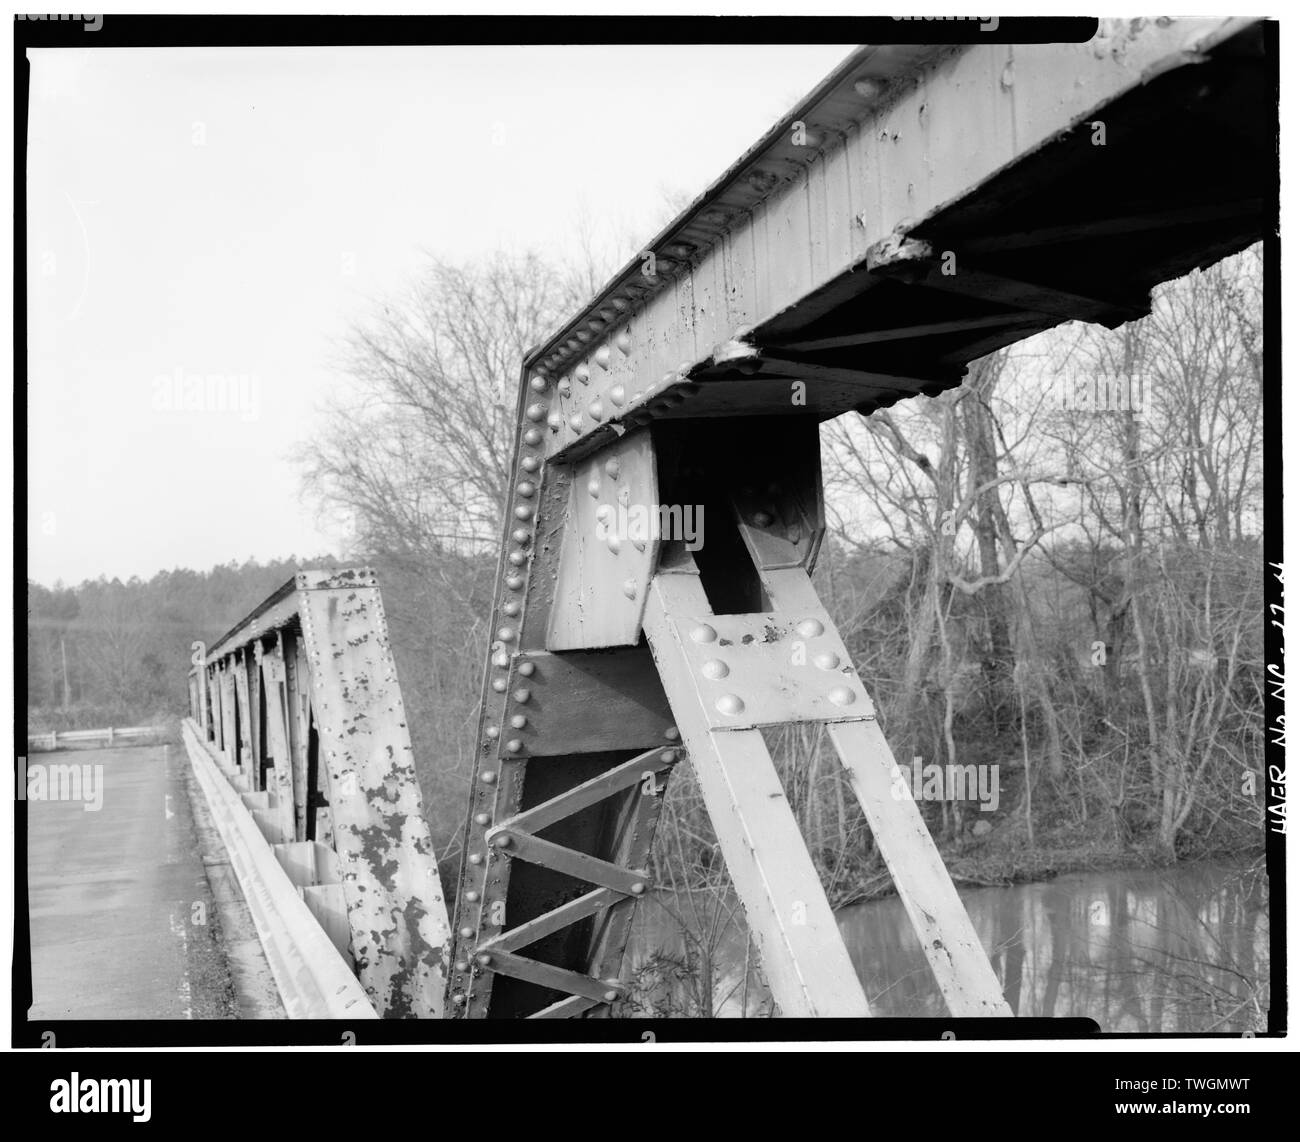 RIVET JOINT, MID-SPAN, NORTH SIDE - Bridge No. 28, Spanning Flatt River at State Route 1004, Durham, Durham County, NC - Stock Image